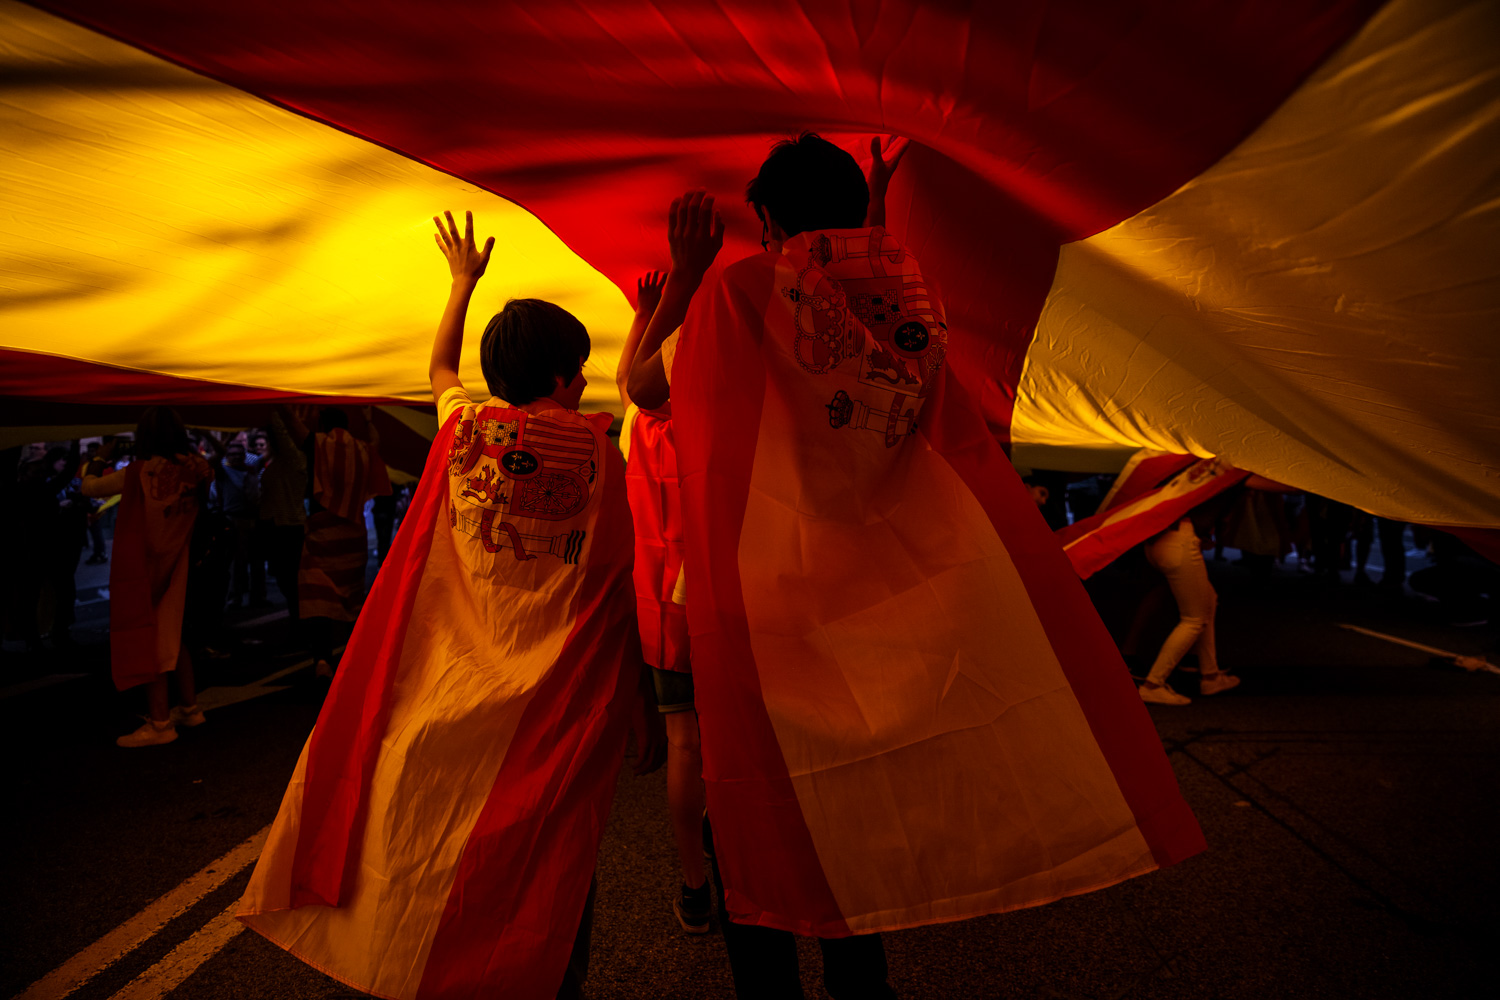 Barcelona, Spain - Young protesters draped in Spanish flags run under a giant Catalan flag during a pro-unity demonstration, 2017.